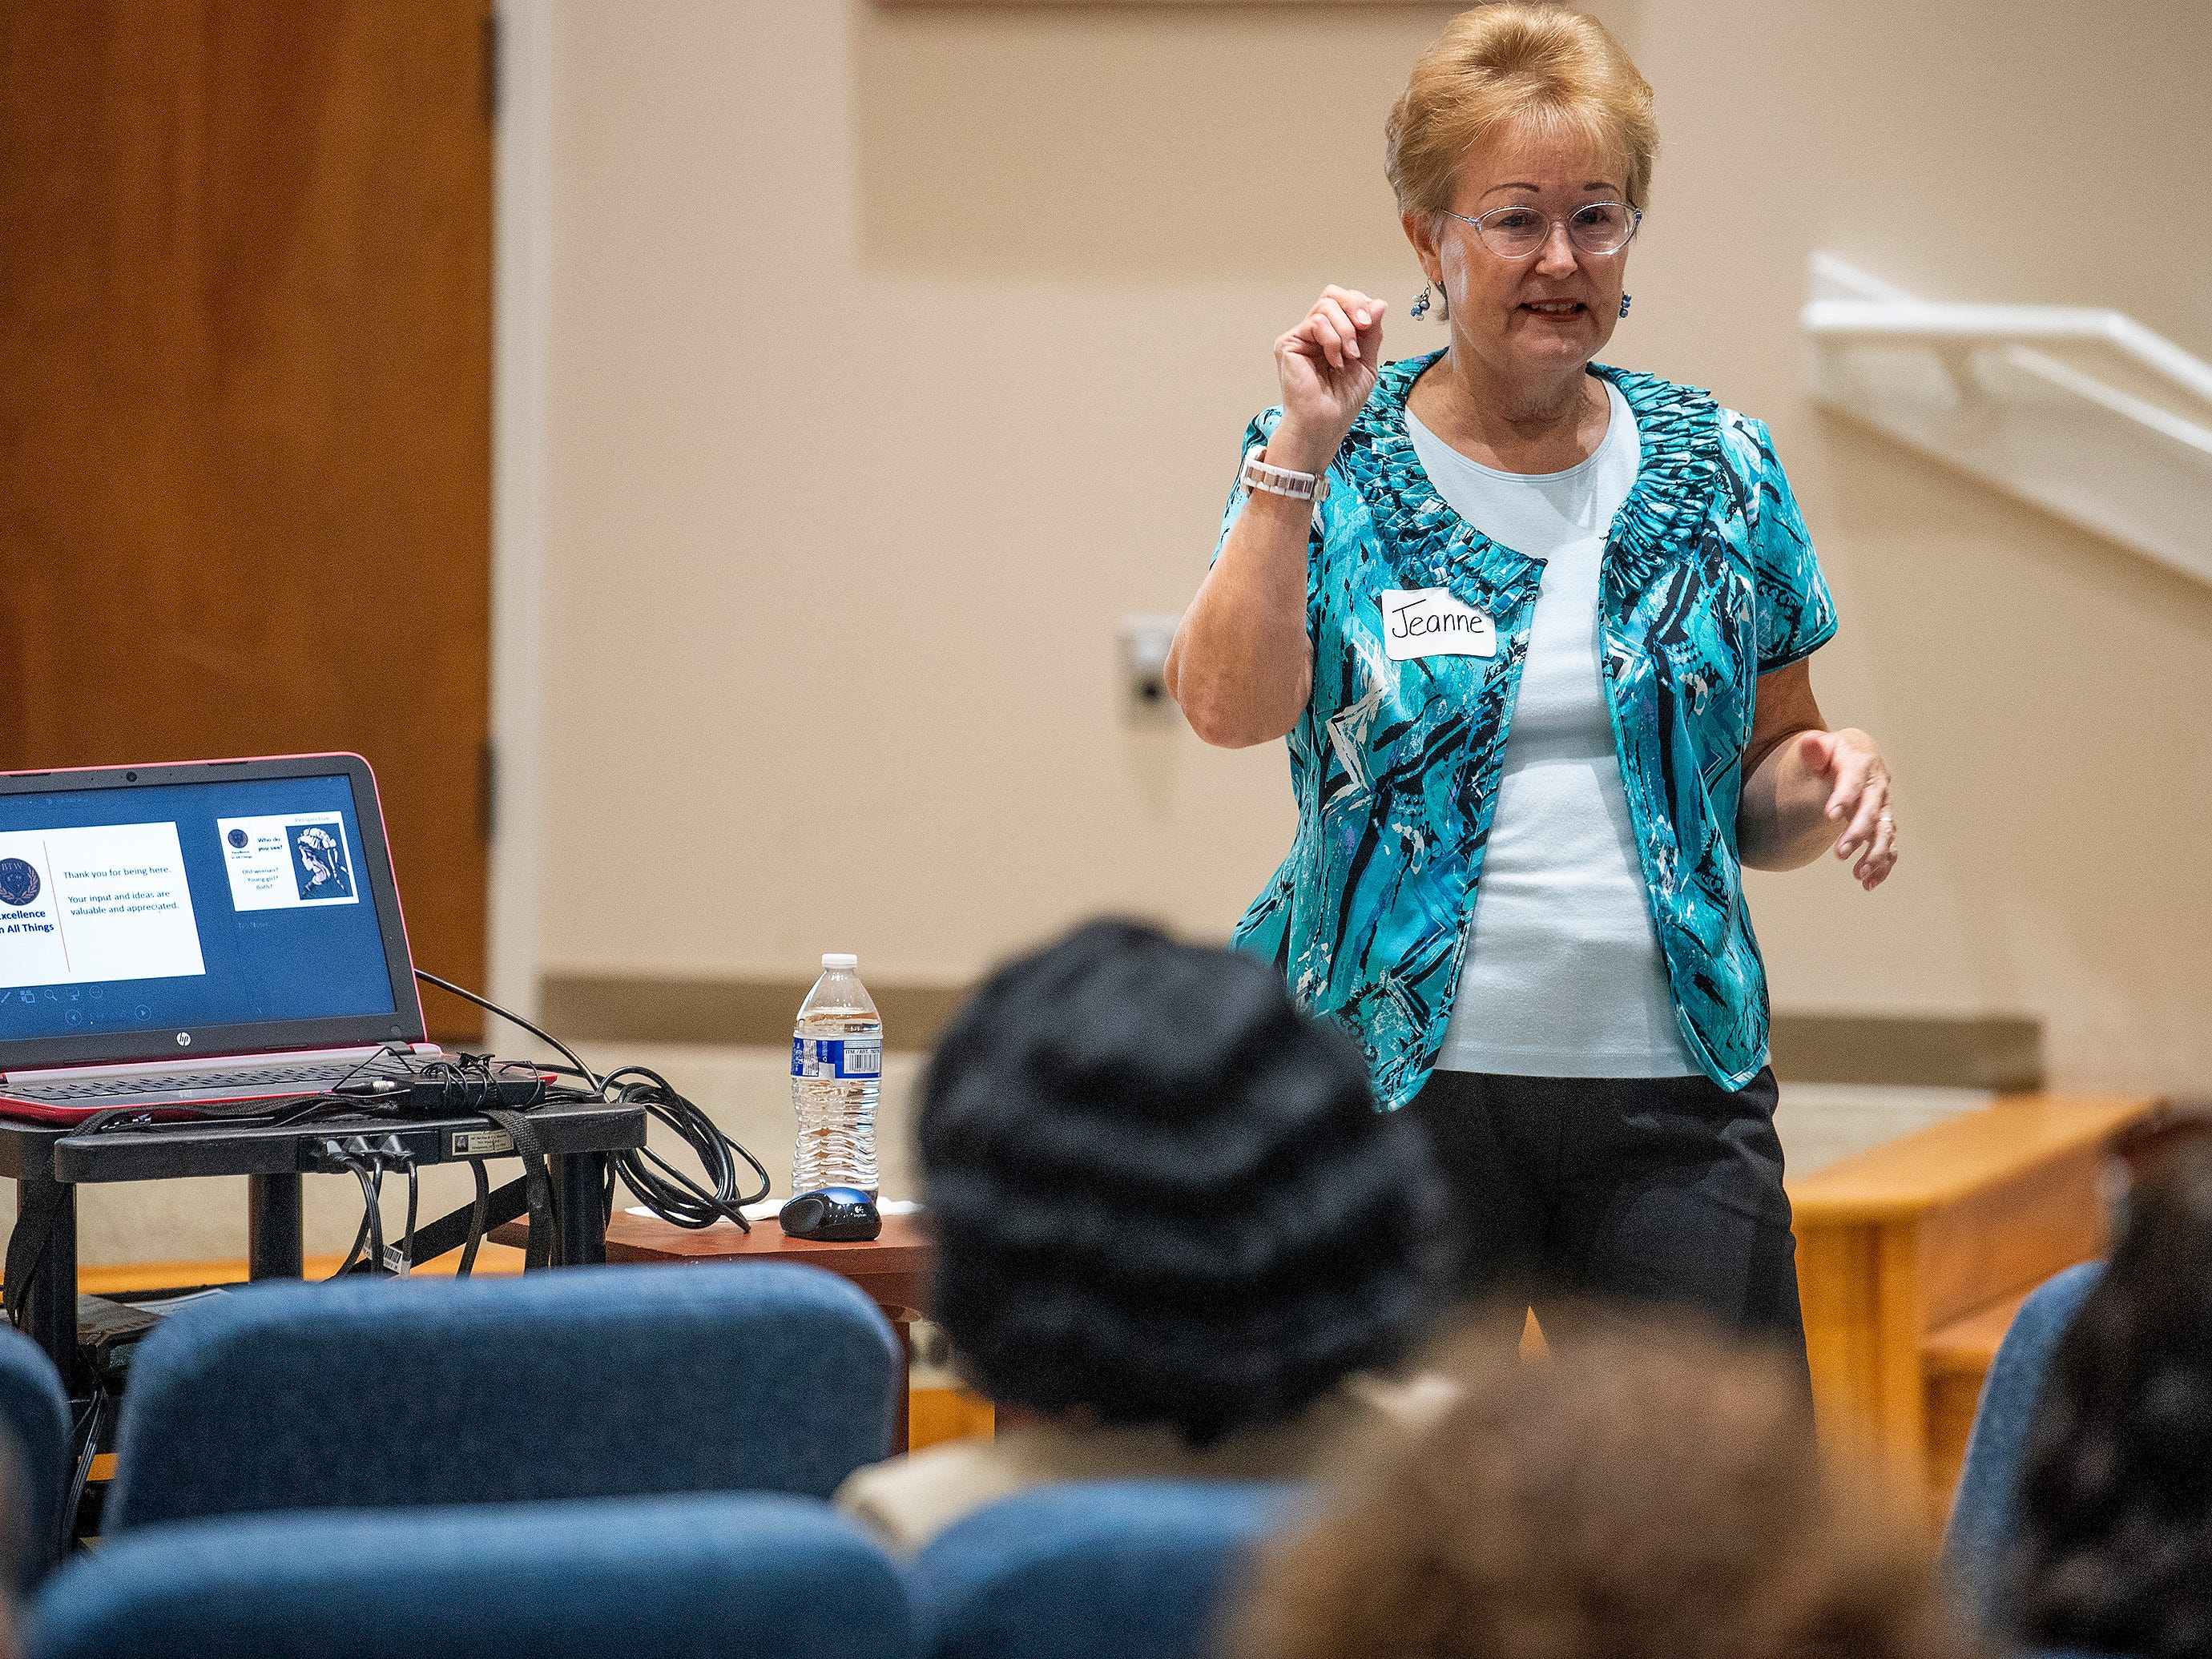 Jeanne Charbonneau leads the beginning session during a Community Charrette held to discuss BTW Magnet School plans on Thursday November 8, 2018 at Aldersgate United Methodist Church in Montgomery, Ala.